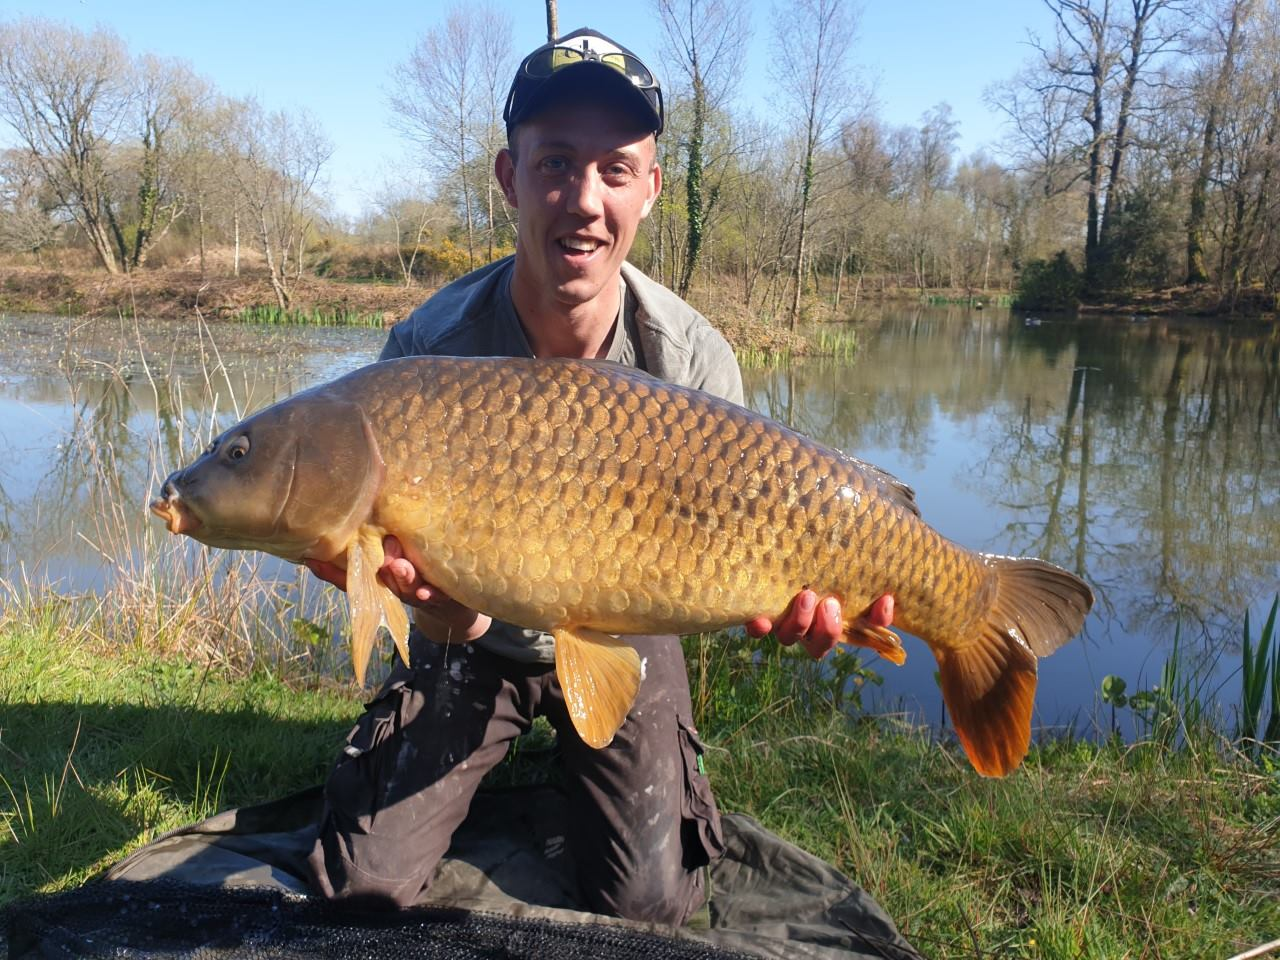 Anglers Paradise - Fish of the week - North Devon Angling ...